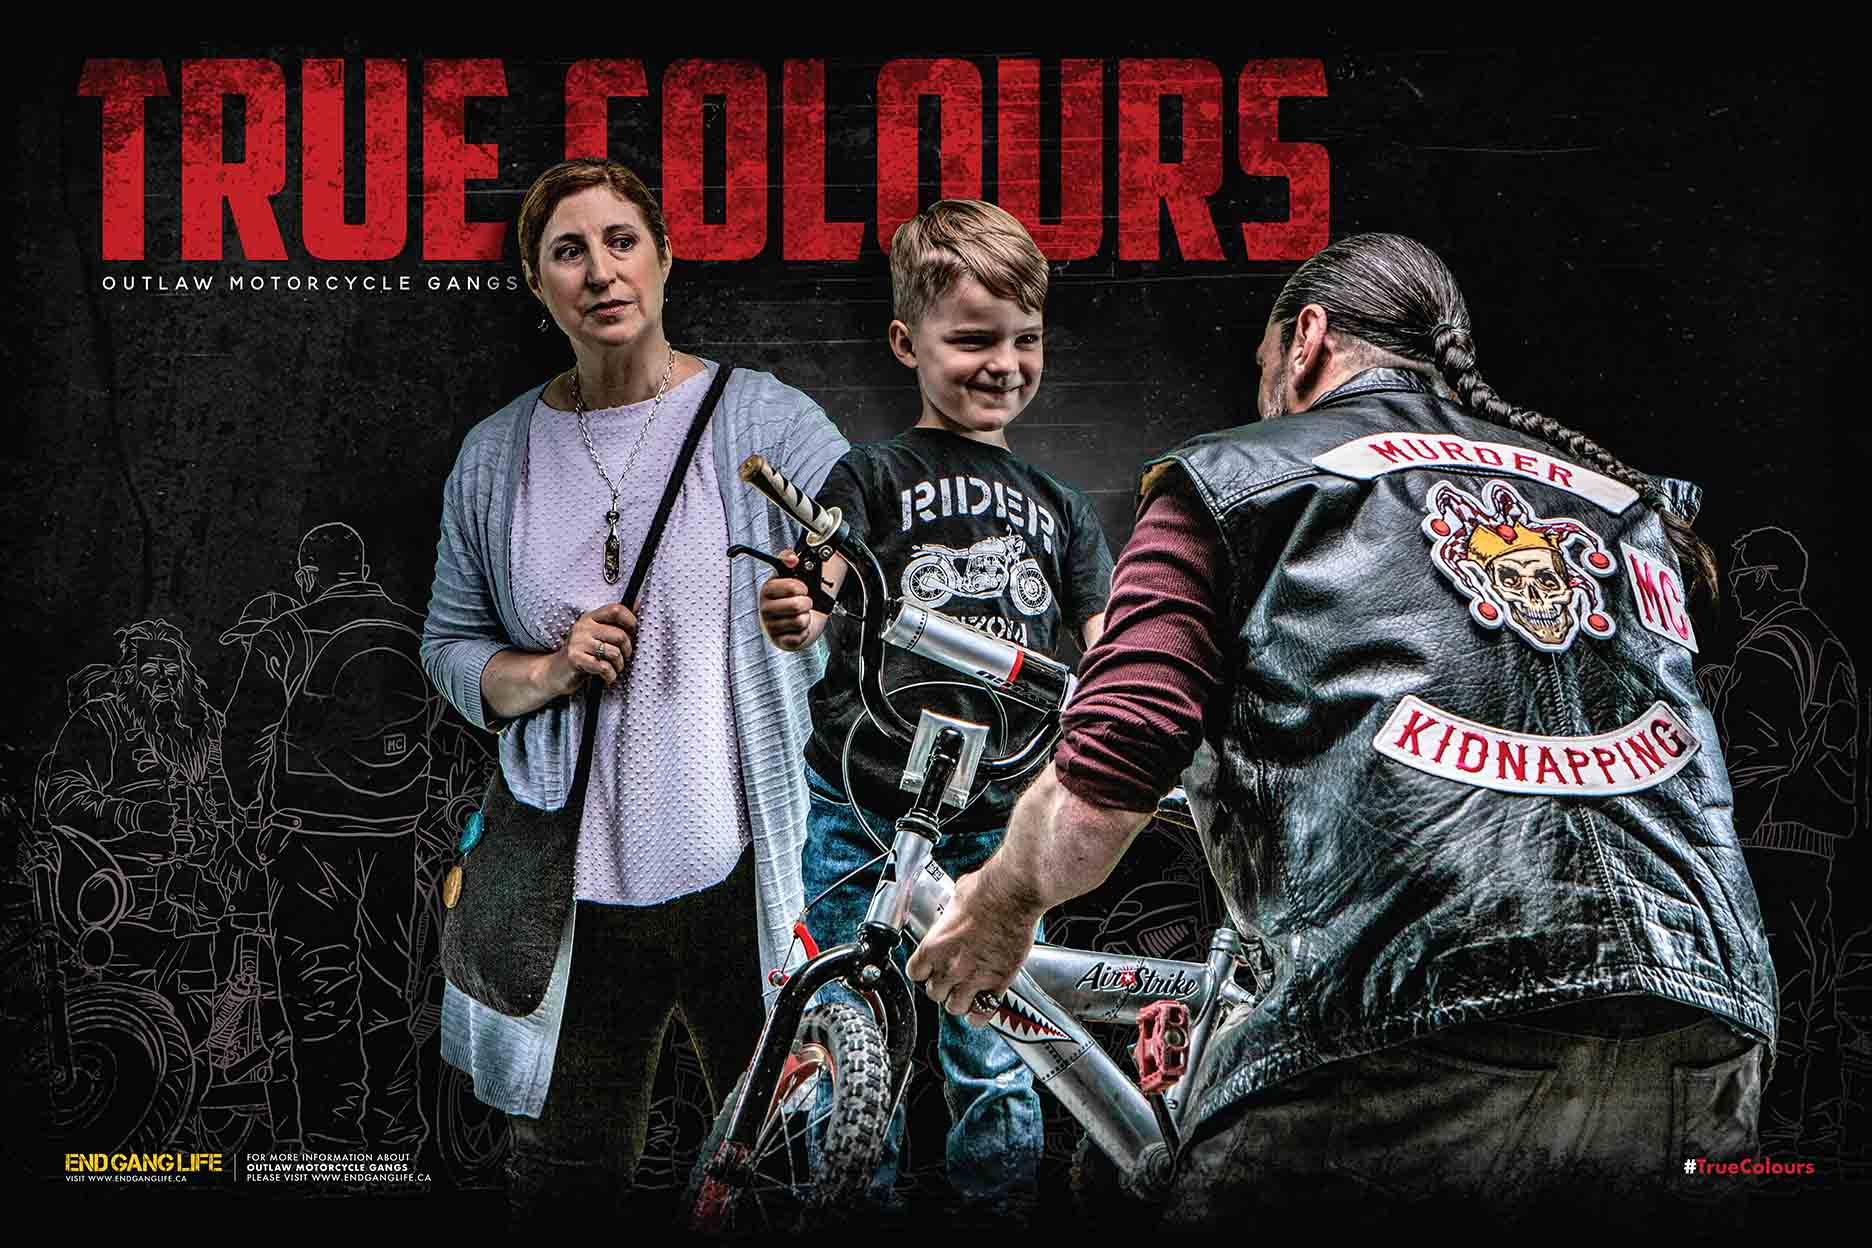 Outlaw Motorcycle Gangs in BC